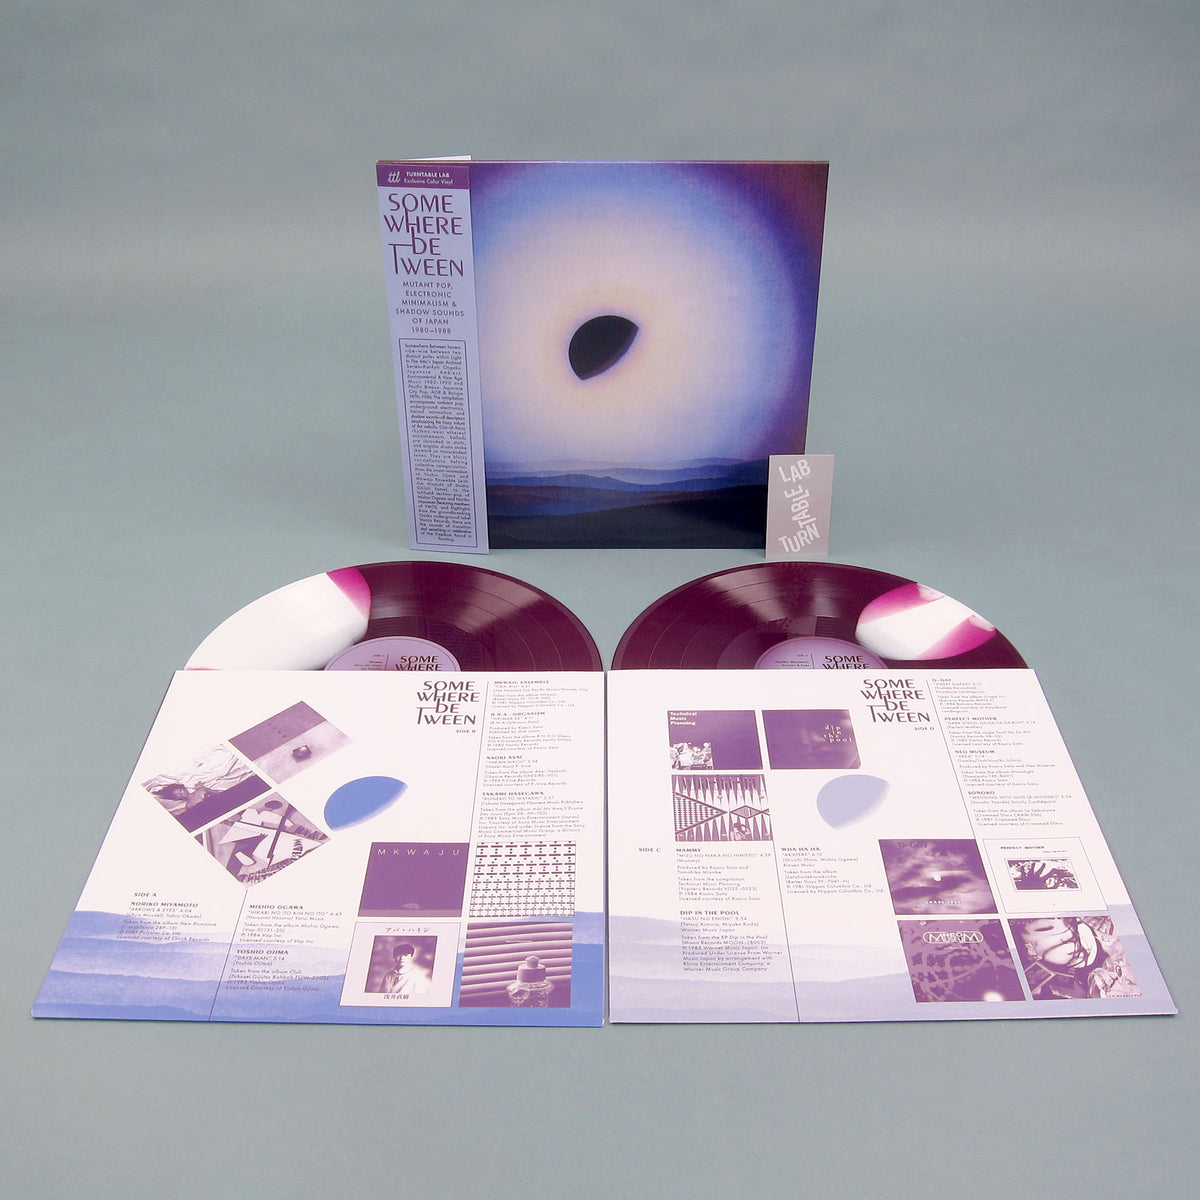 Light In The Attic: Somewhere Between - Mutant Pop, Electronic Minimalism & Shadow Sounds of Japan 1980-88 (Colored Vinyl) Vinyl LP - Turntable Lab Exclusive